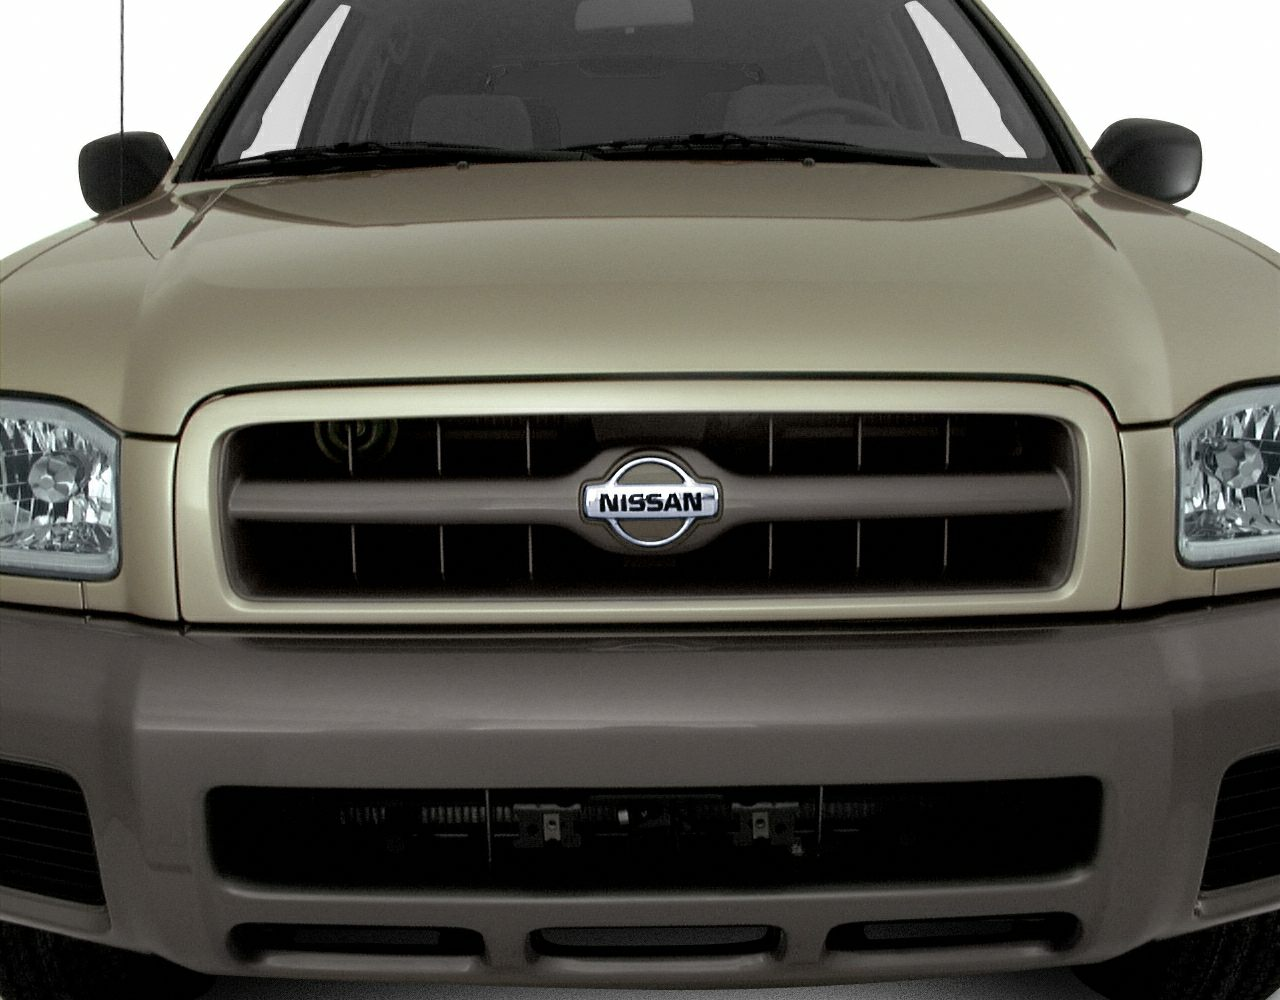 2000 Nissan Pathfinder Exterior Photo